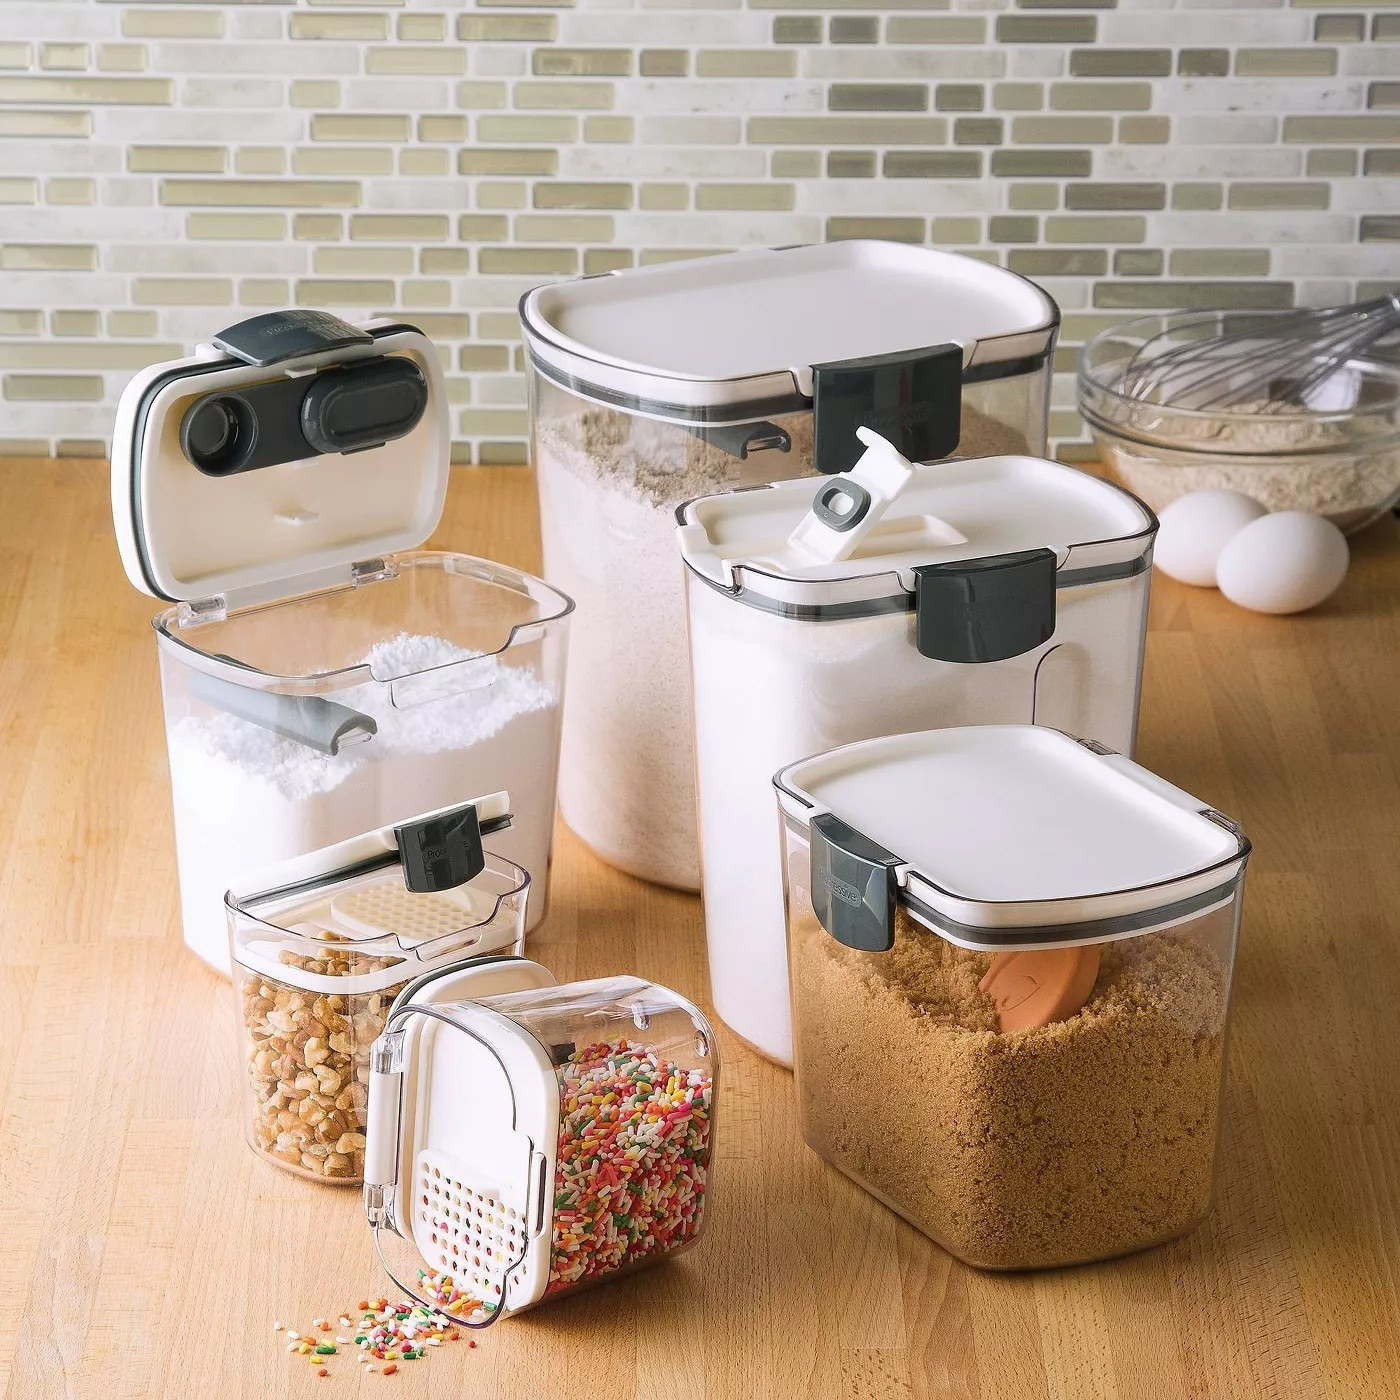 A set of food containers